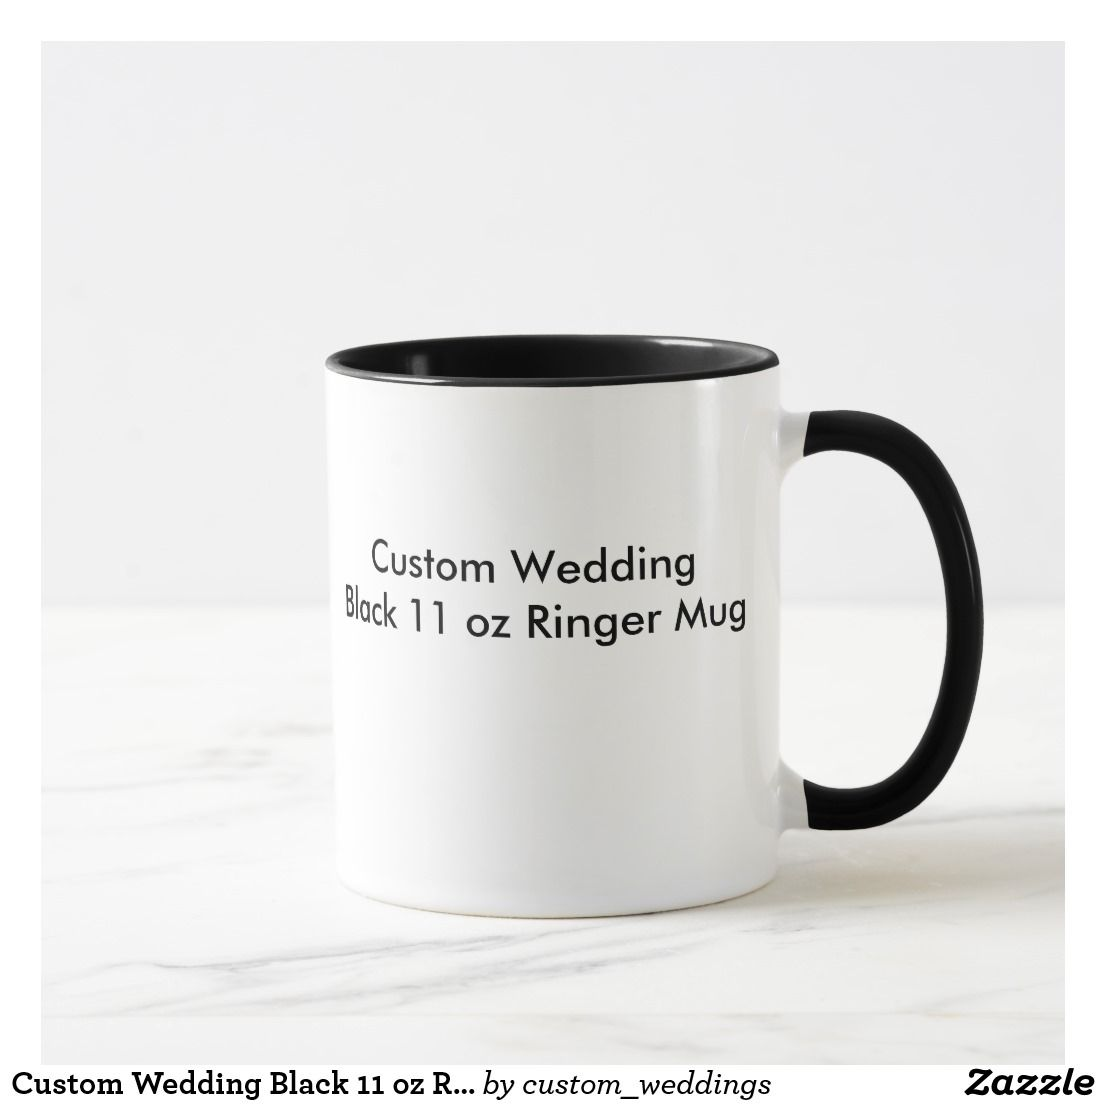 Custom Wedding Black 11 oz Ringer Mug | Mugs | Pinterest | Wedding ...